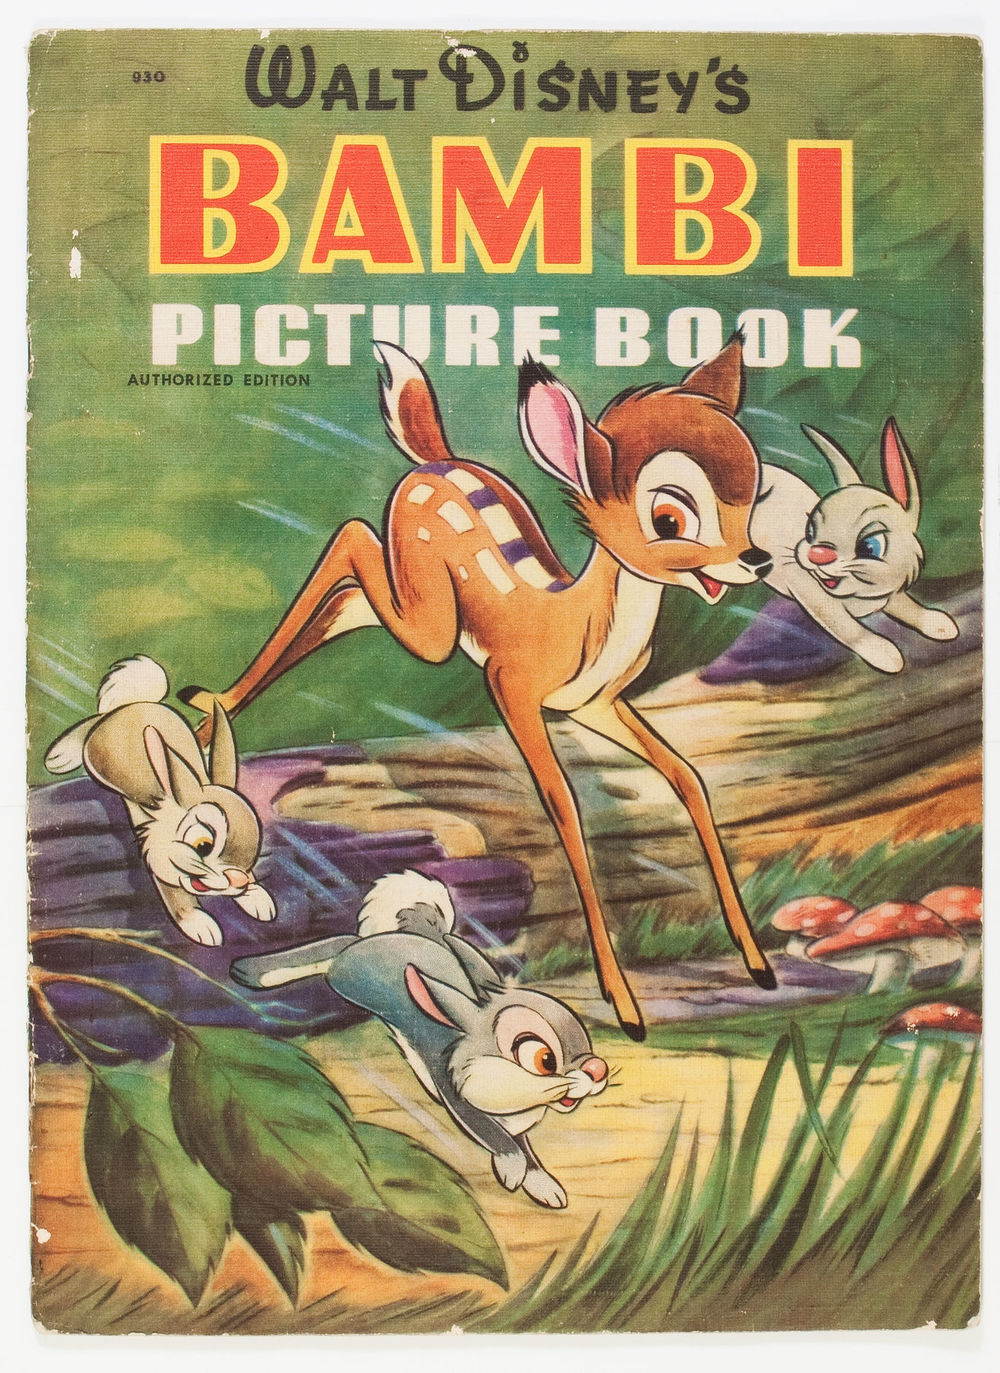 Bambi Picture Book #930 (Disney/Simon & Shuster, 1942) via Heritage Auctions